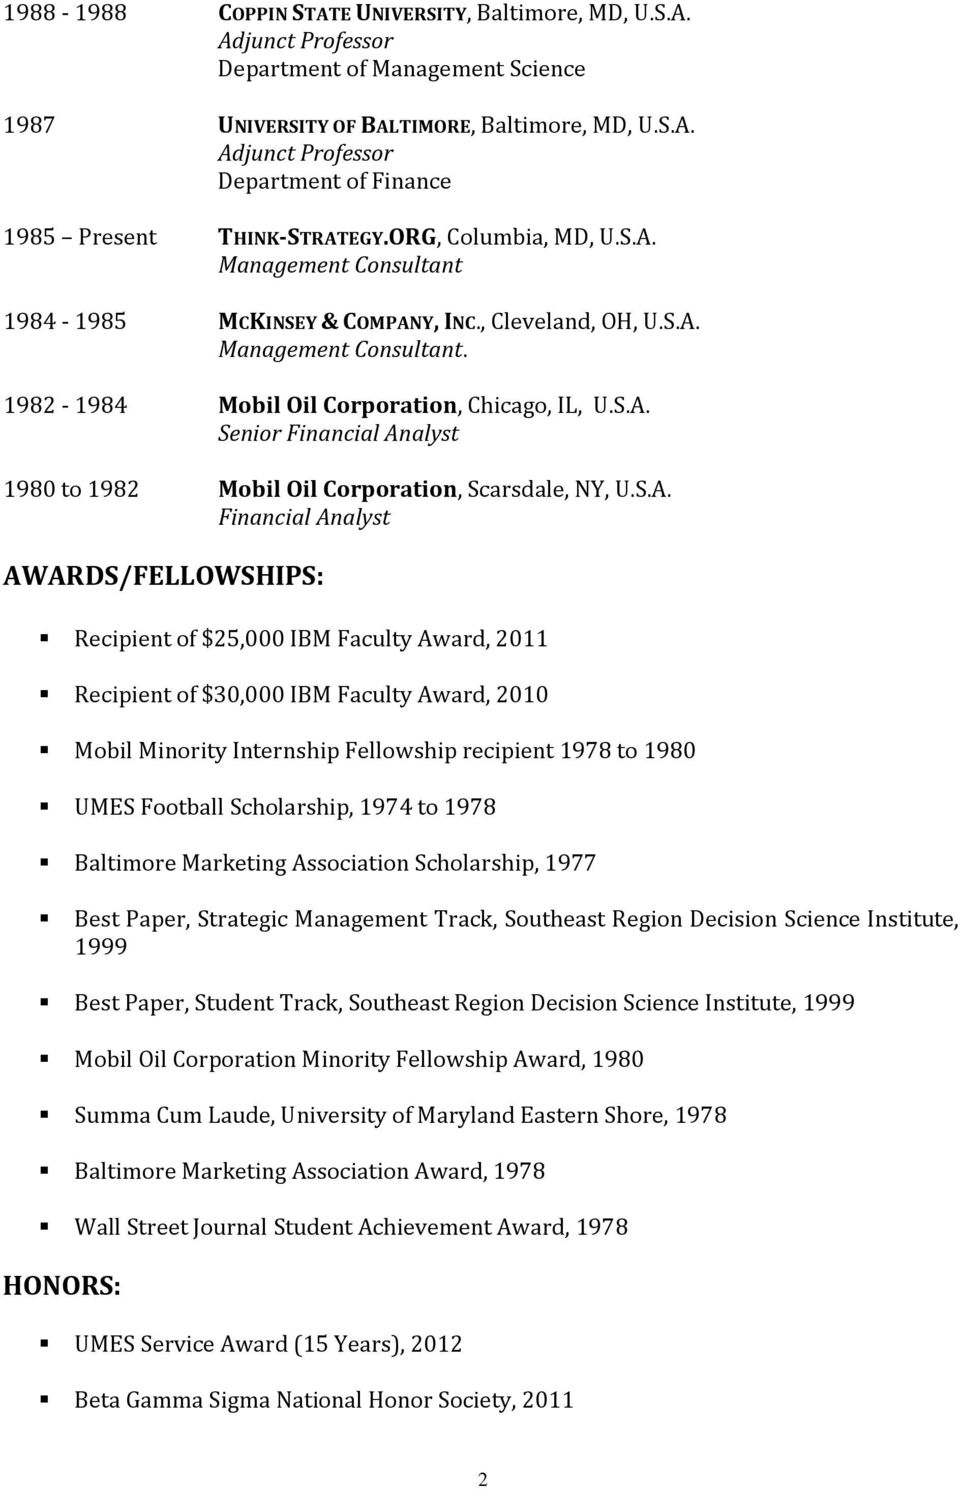 S.A. Financial Analyst AWARDS/FELLOWSHIPS: Recipient of $25,000 IBM Faculty Award, 2011 Recipient of $30,000 IBM Faculty Award, 2010 Mobil Minority Internship Fellowship recipient 1978 to 1980 UMES